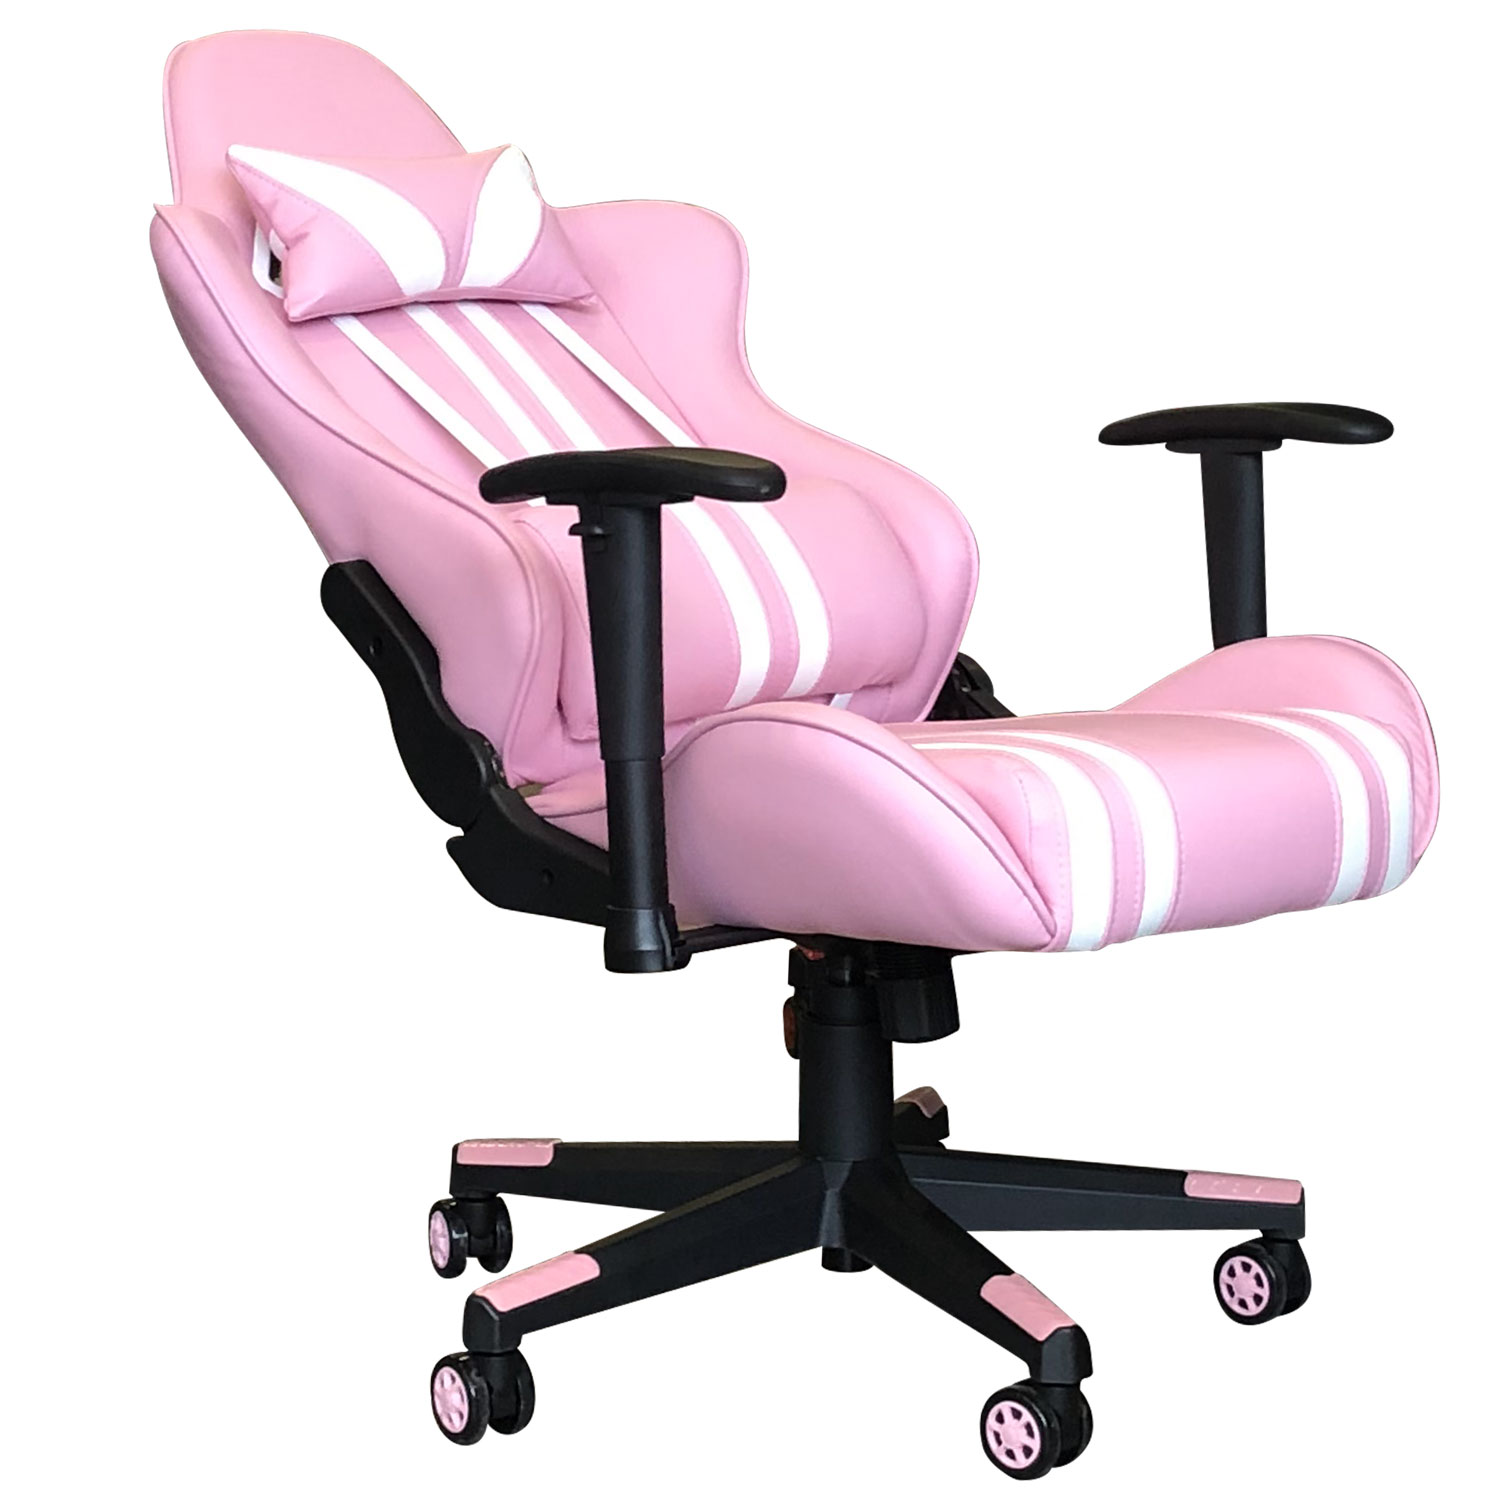 SILLON GAMER PRO PINK